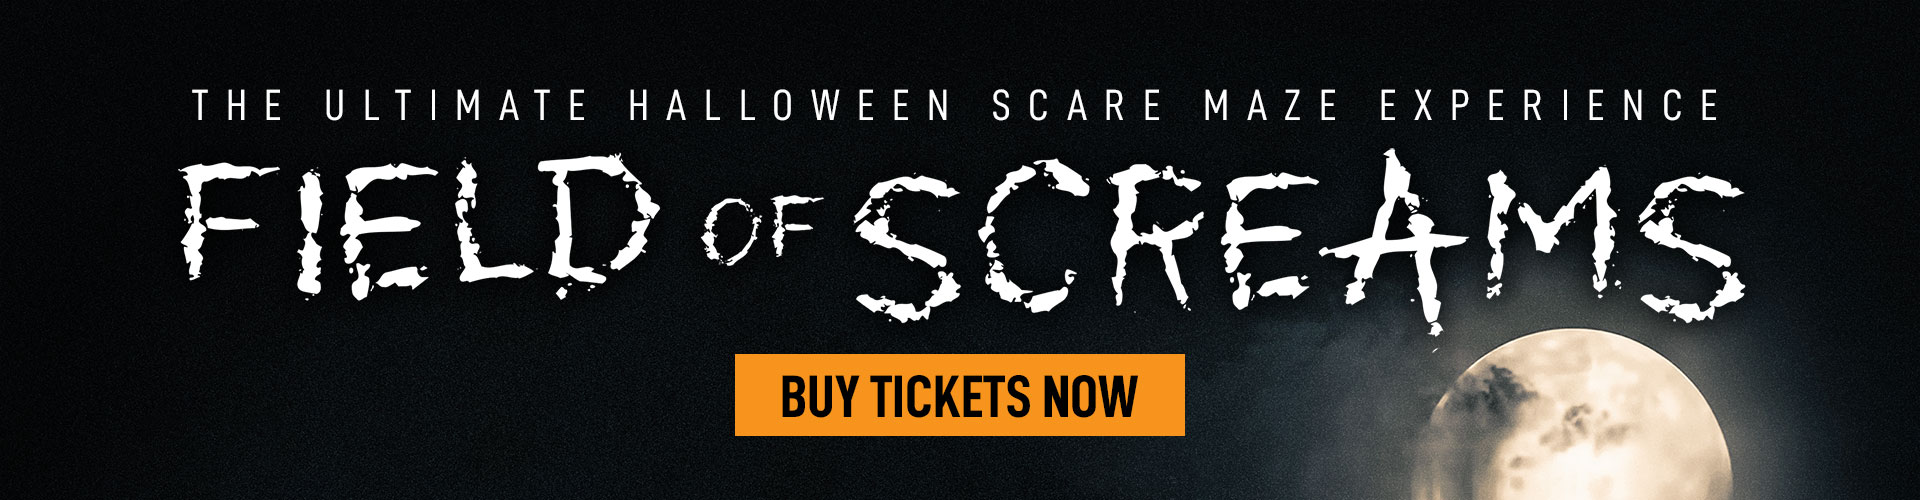 cattows farm field of screams